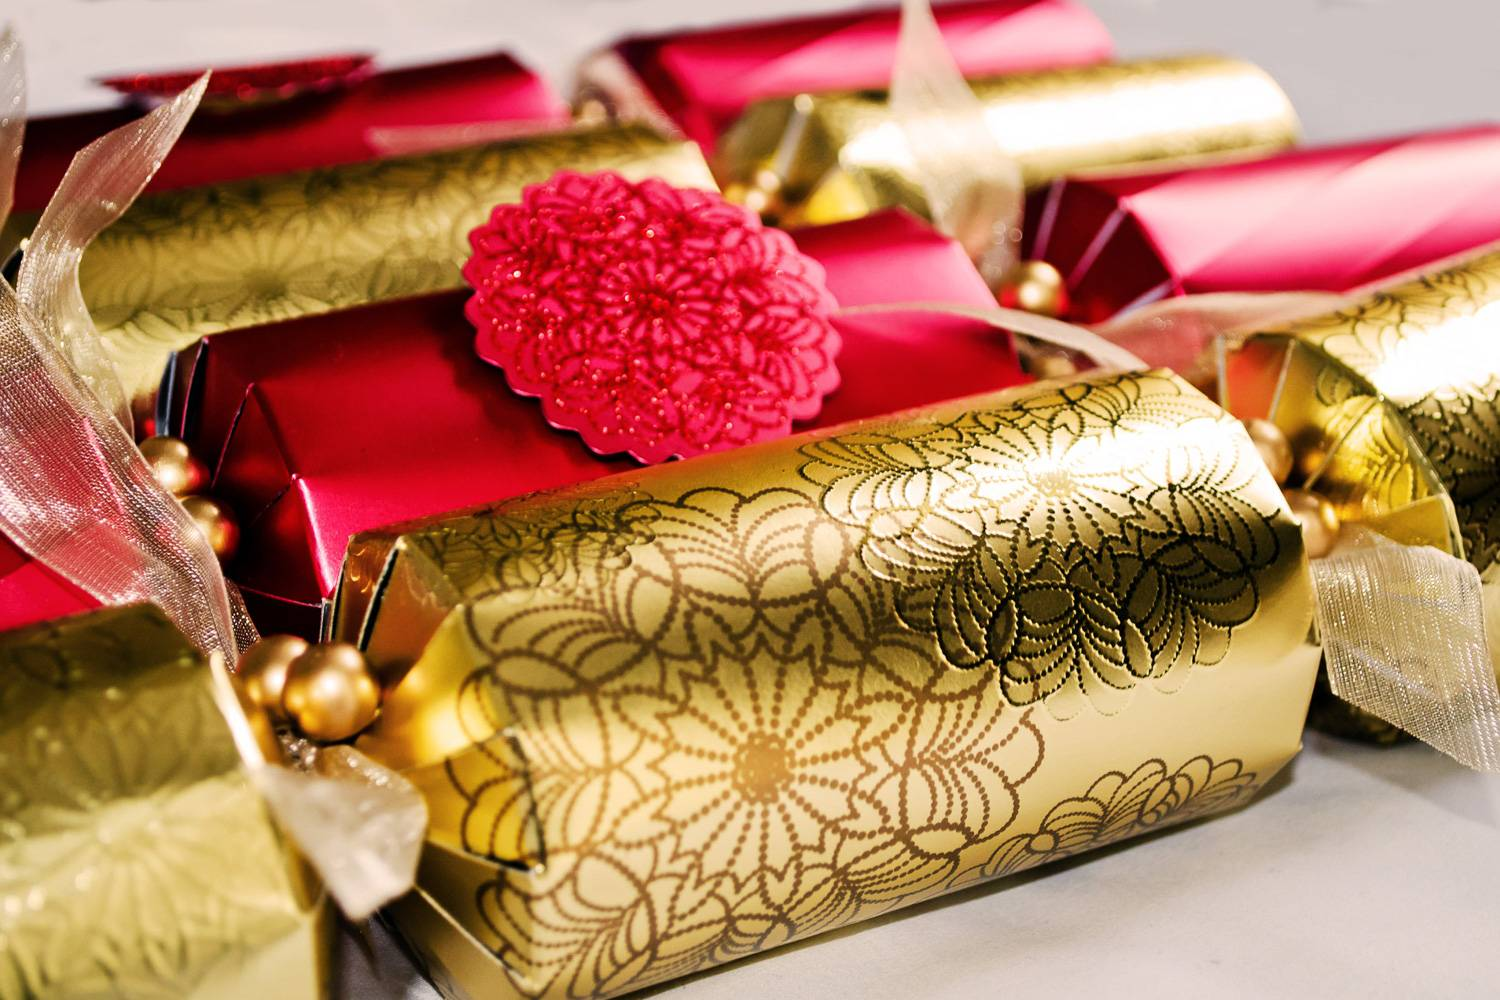 Image of red and gold English Christmas crackers.